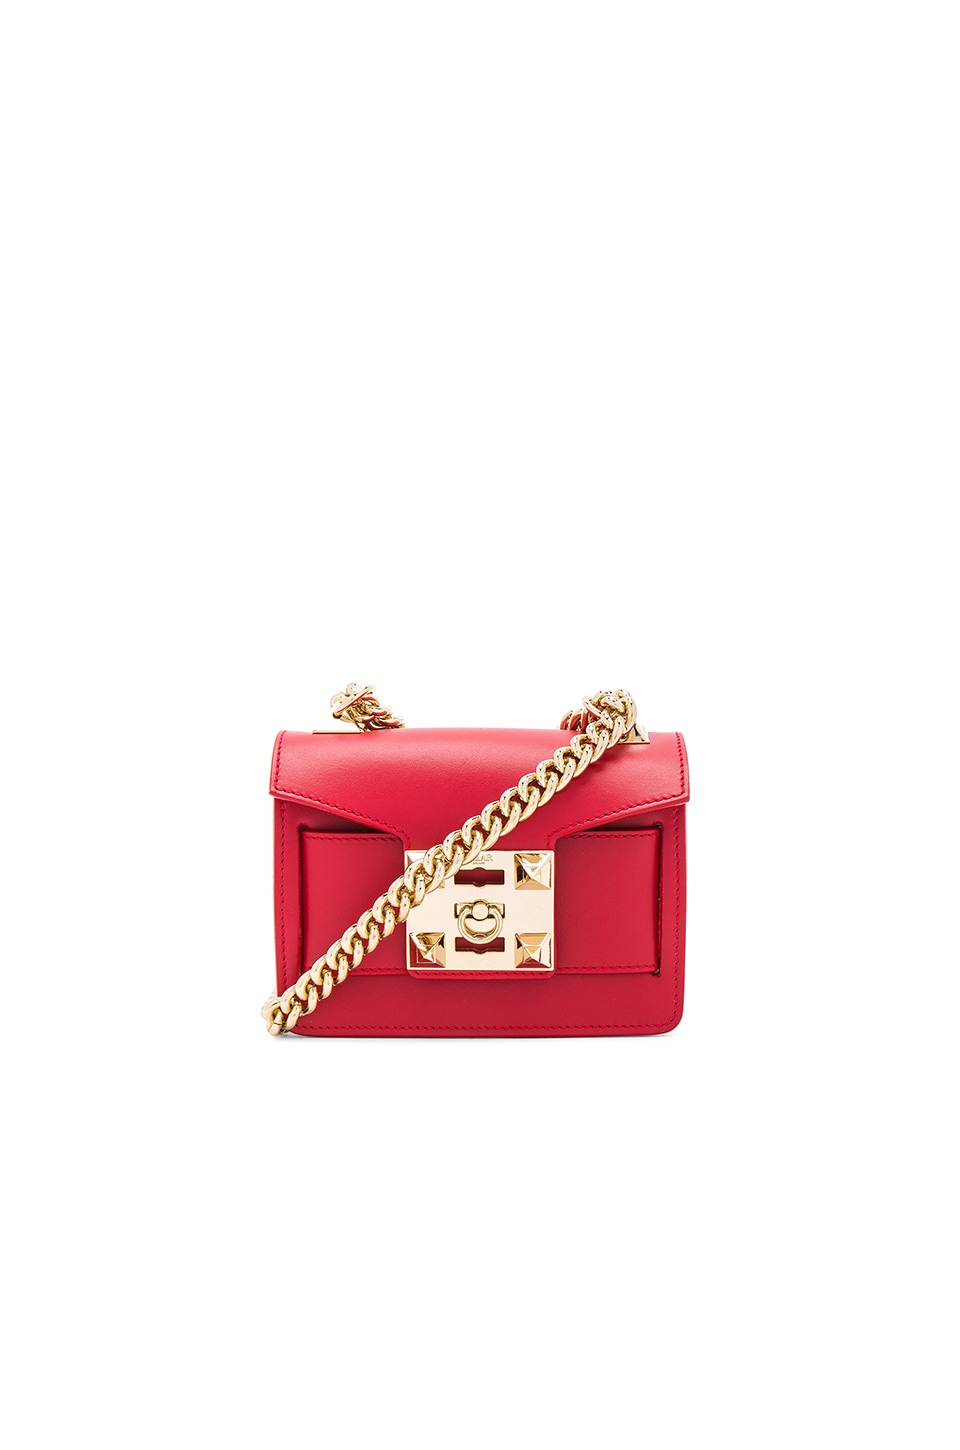 SALAR Gaia Bag in Red